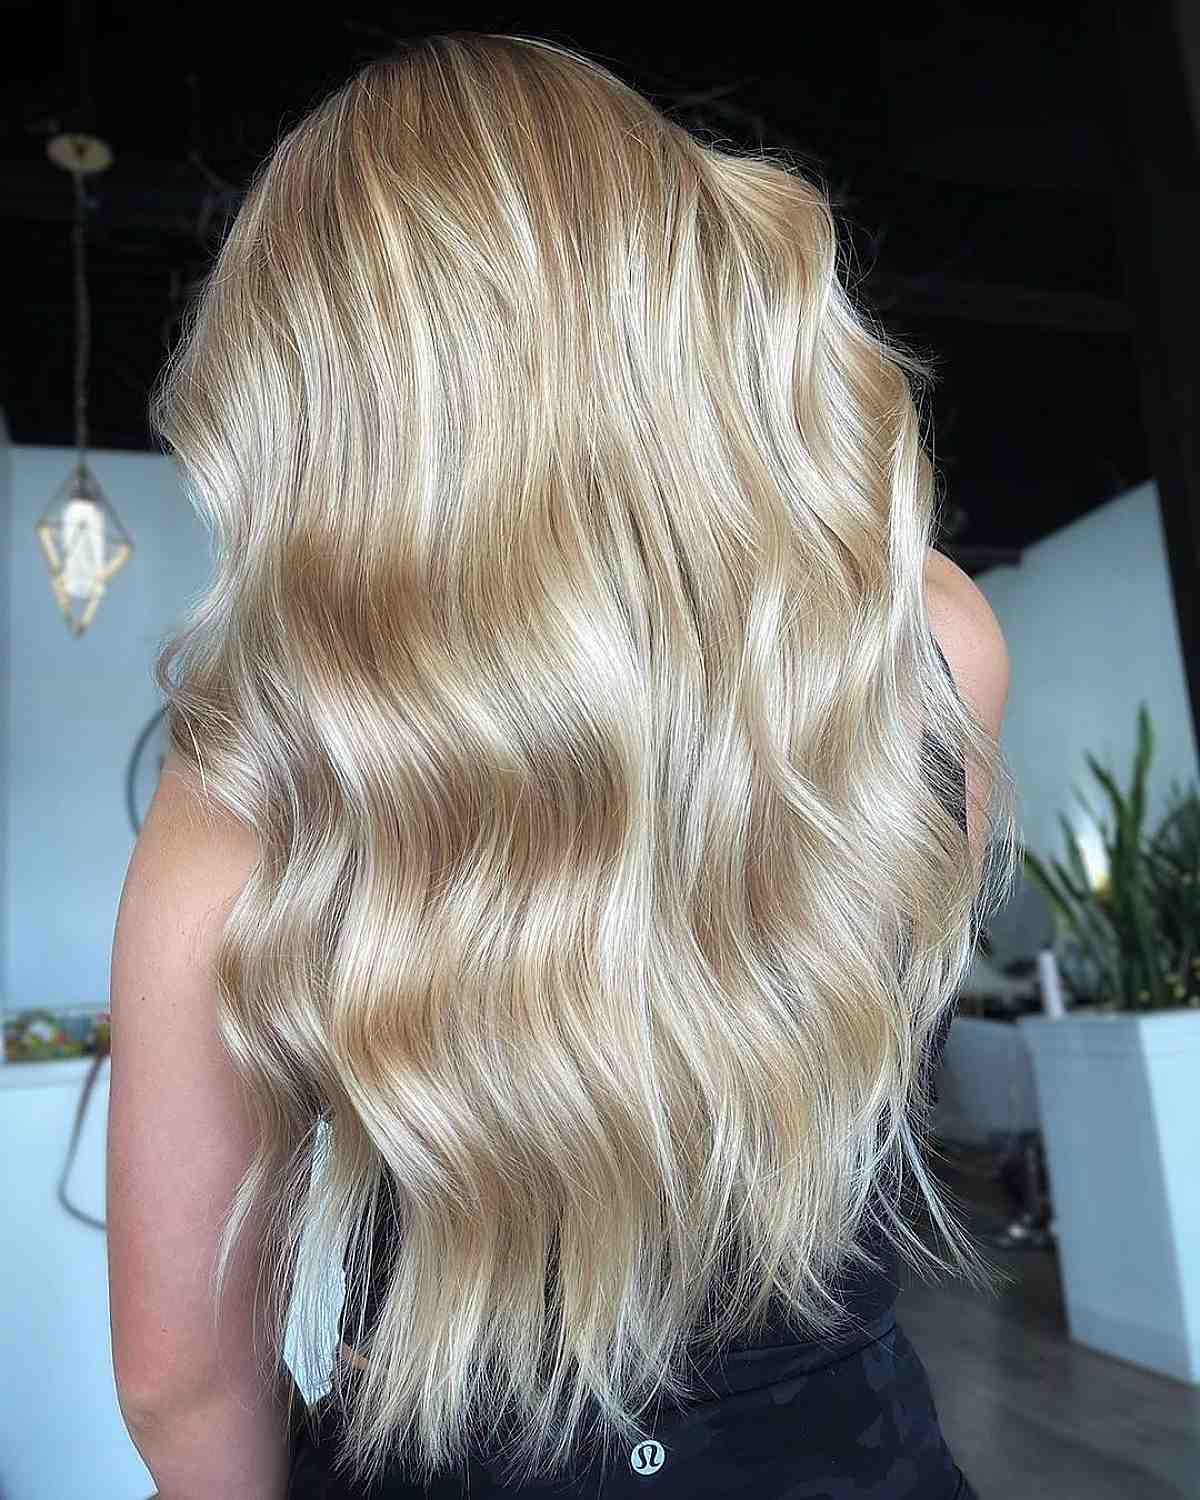 long layered blonde balayage hairstyle for blondes